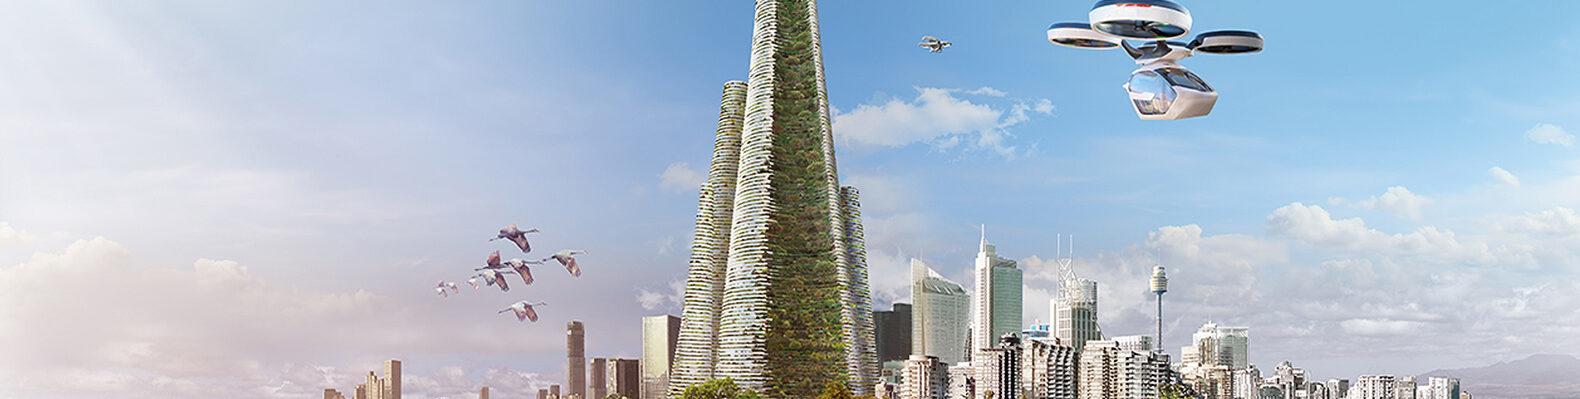 rendering of conical tower covered in greenery